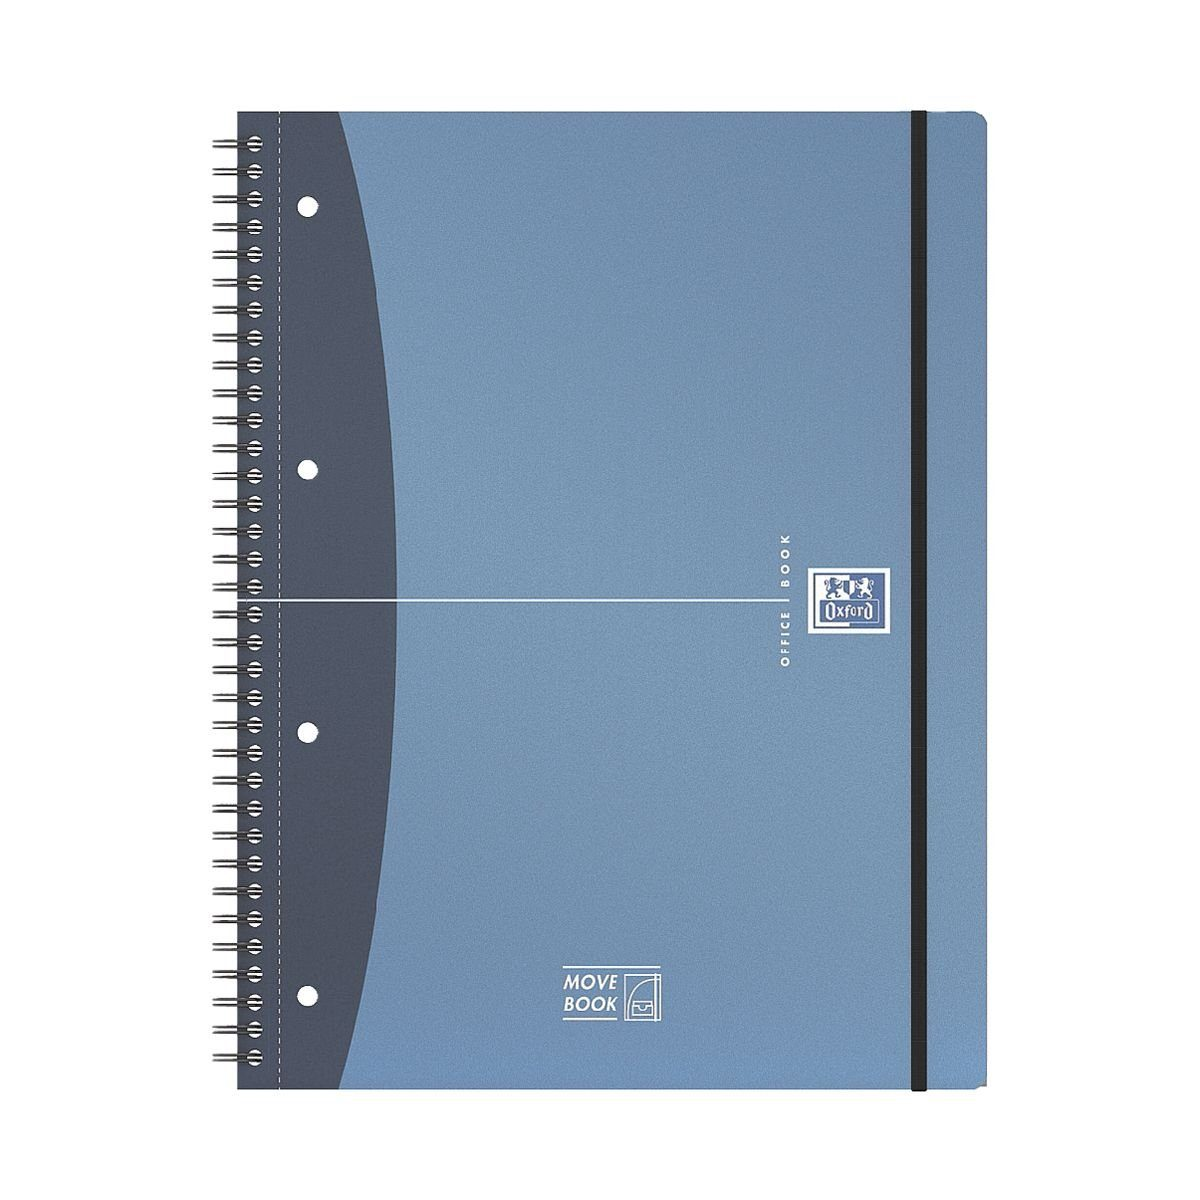 OXFORD Collegeblock 400011307 A4 liniert, Optik-Papier »Movebook«